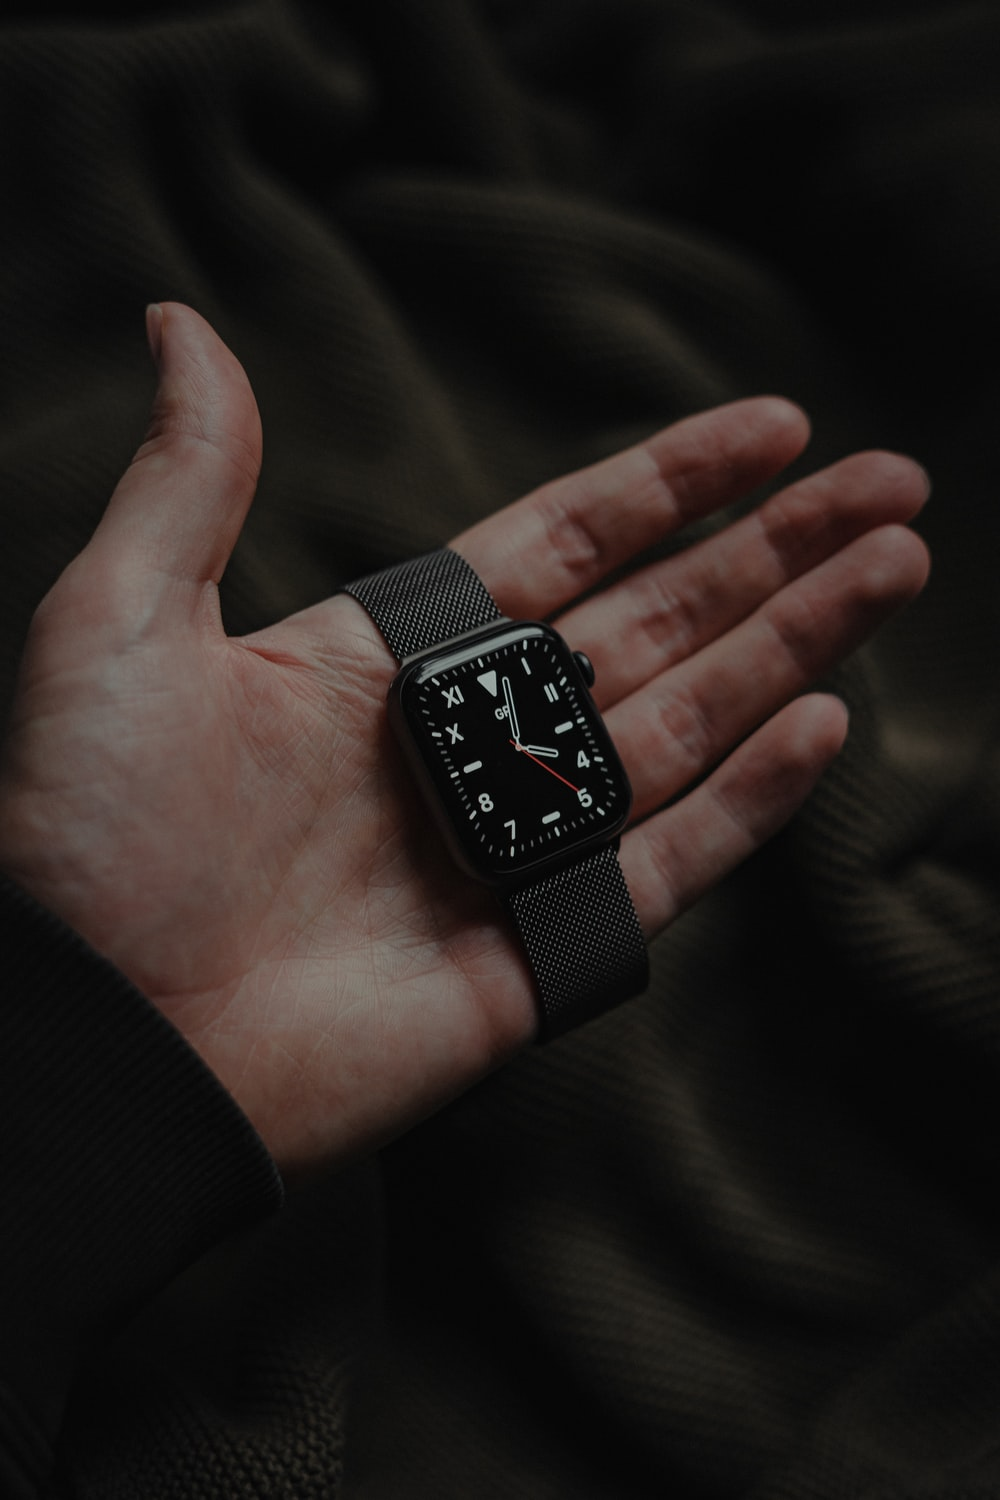 black and silver analog watch